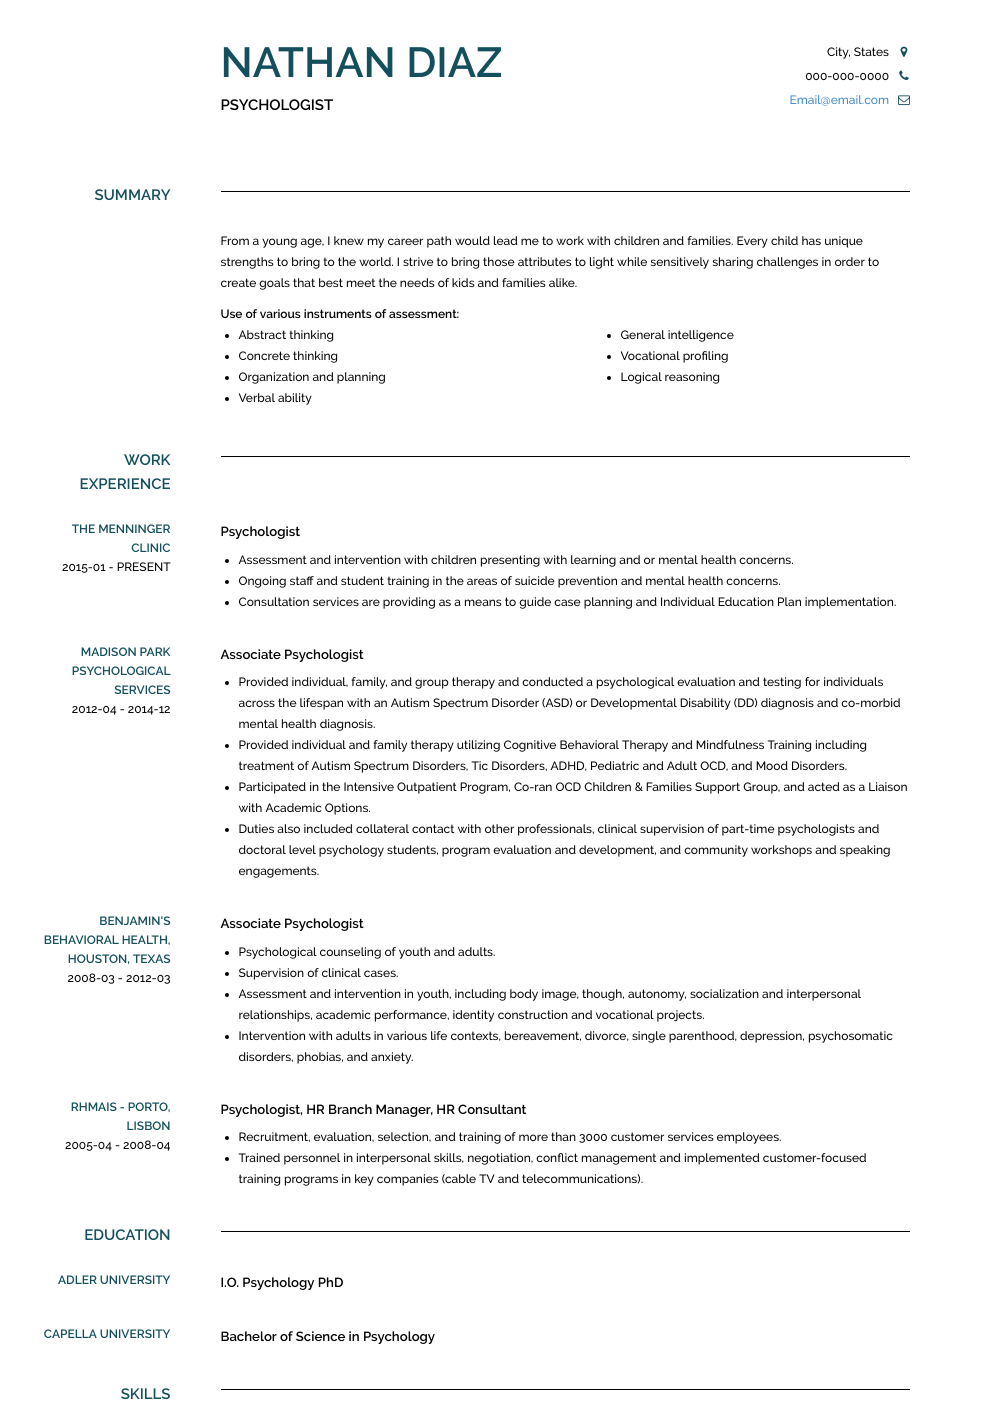 Psychologist Resume Samples Templates Visualcv Job Interview Advice This Or That Questions Psychologist